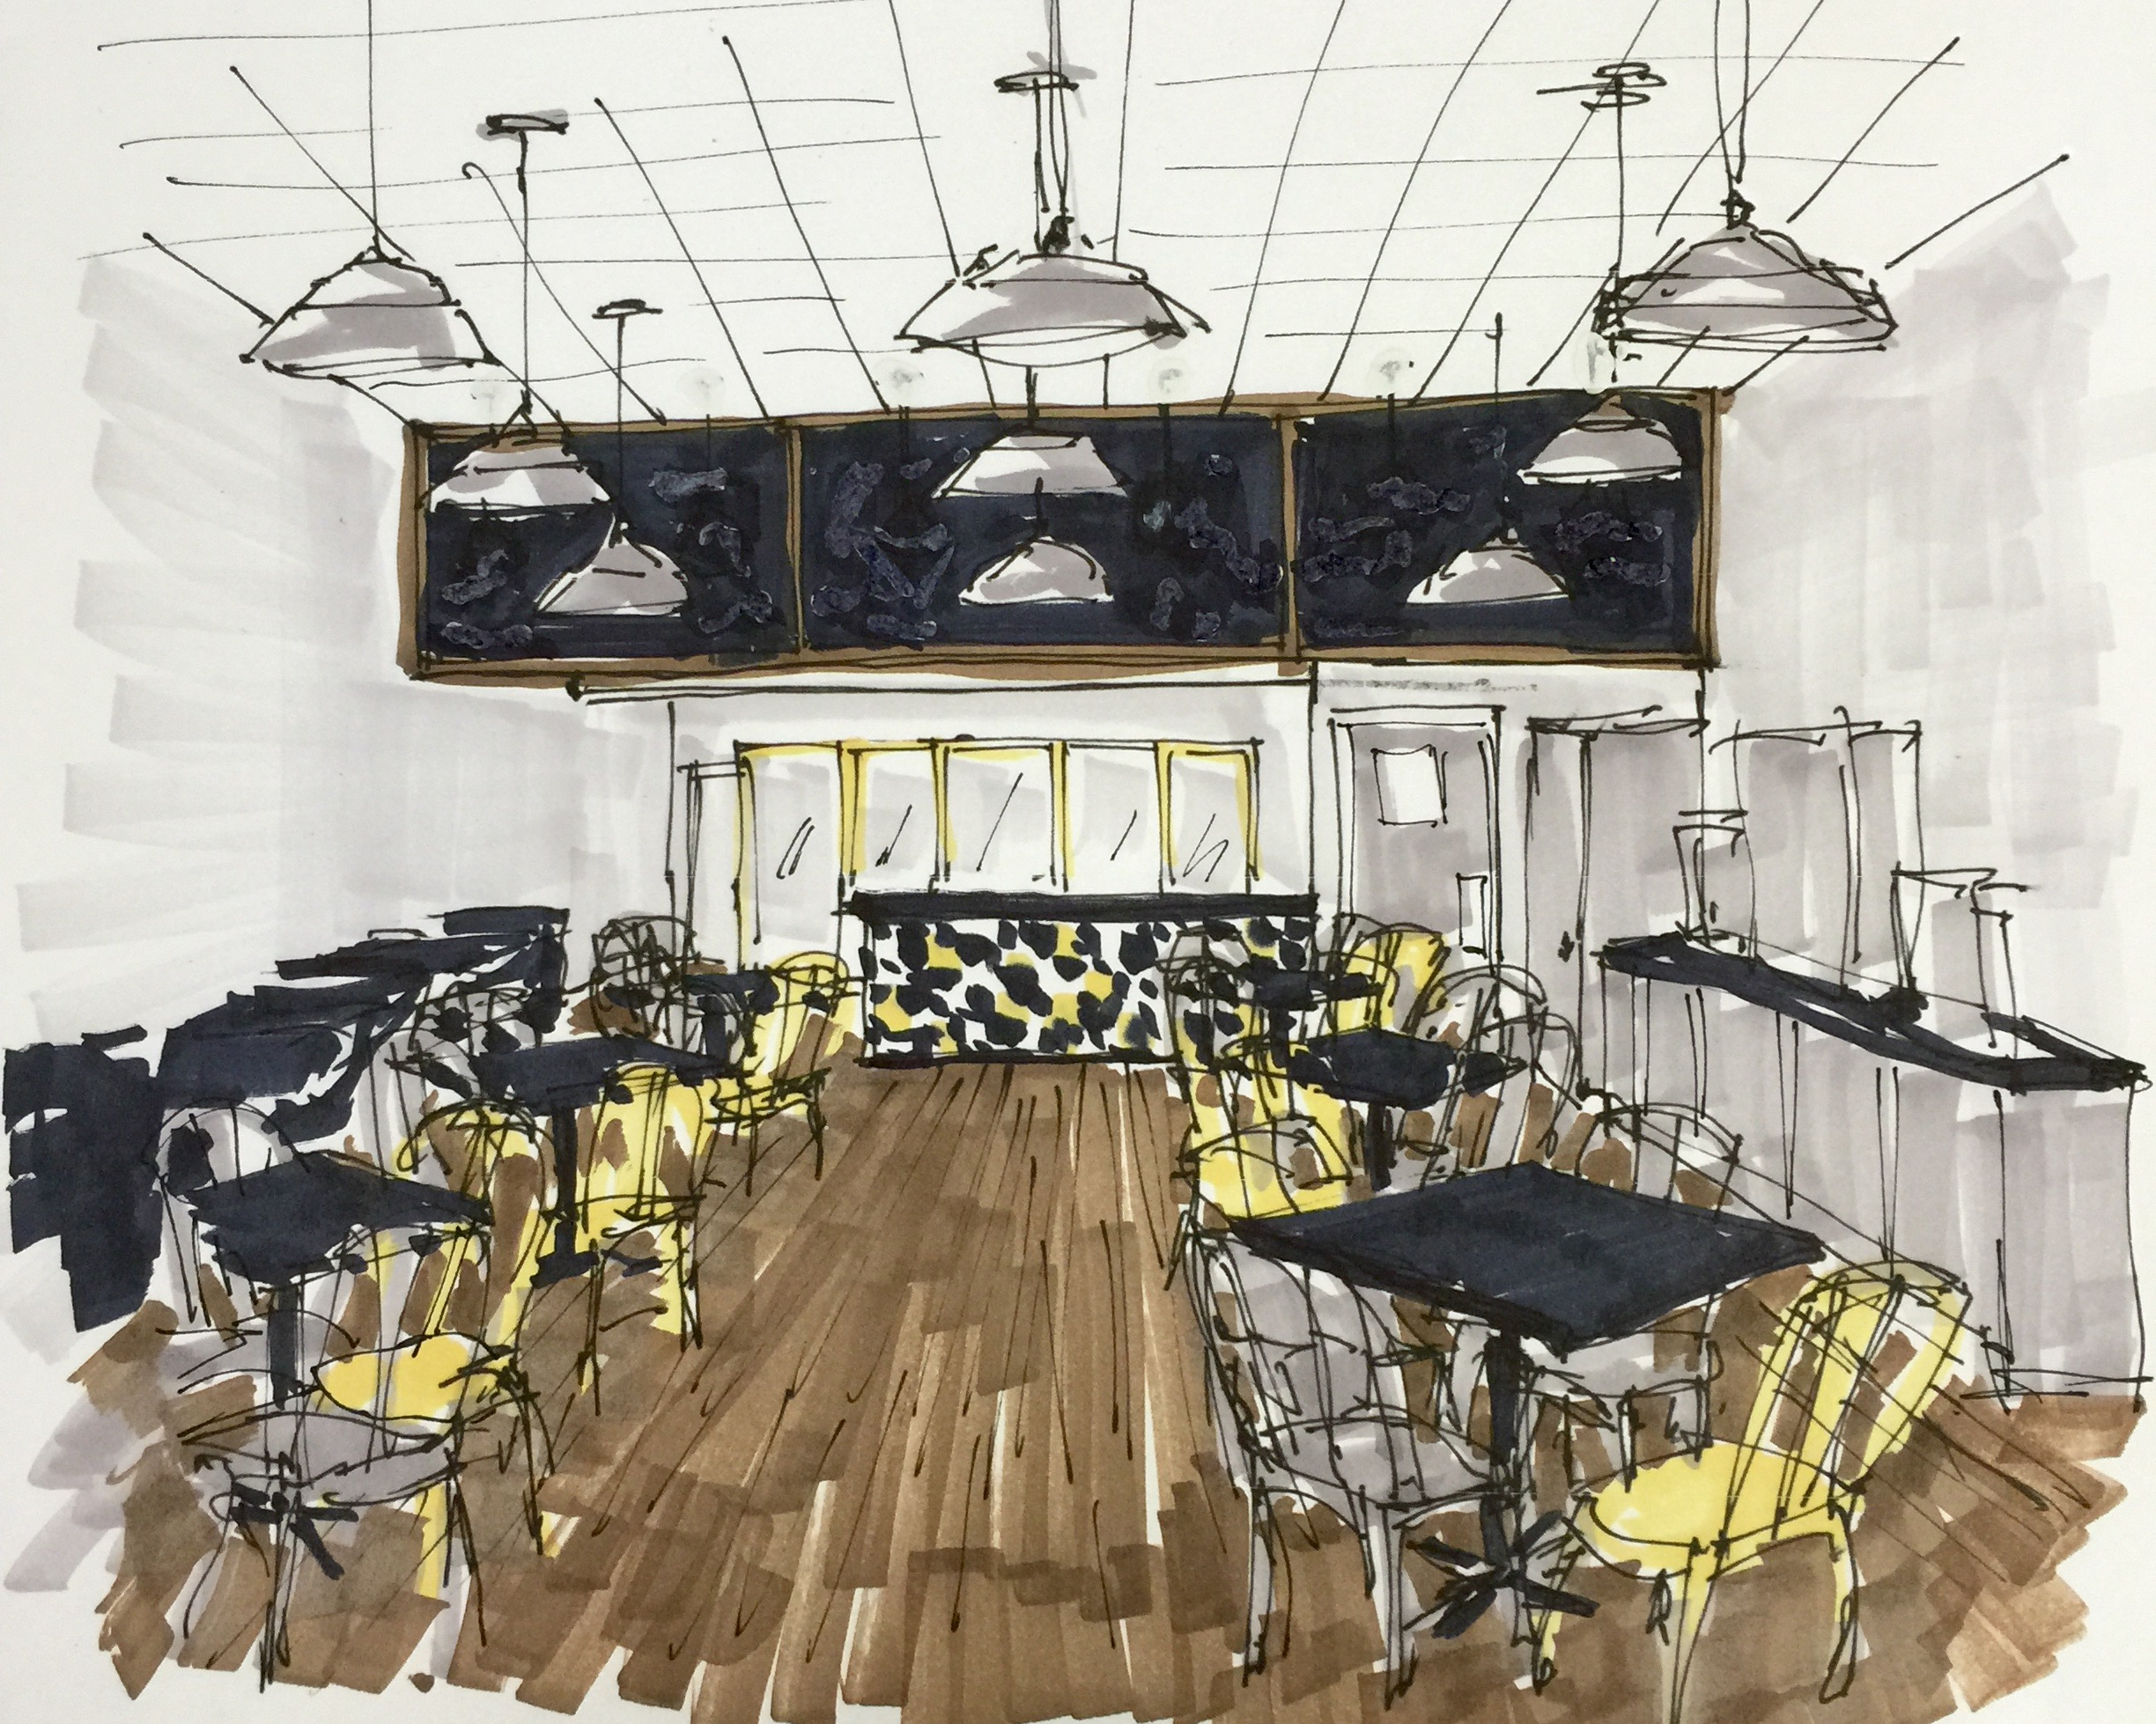 Sketch of interior designer Carla Aston's vision for her remodel of a Honey Bee Ham store.